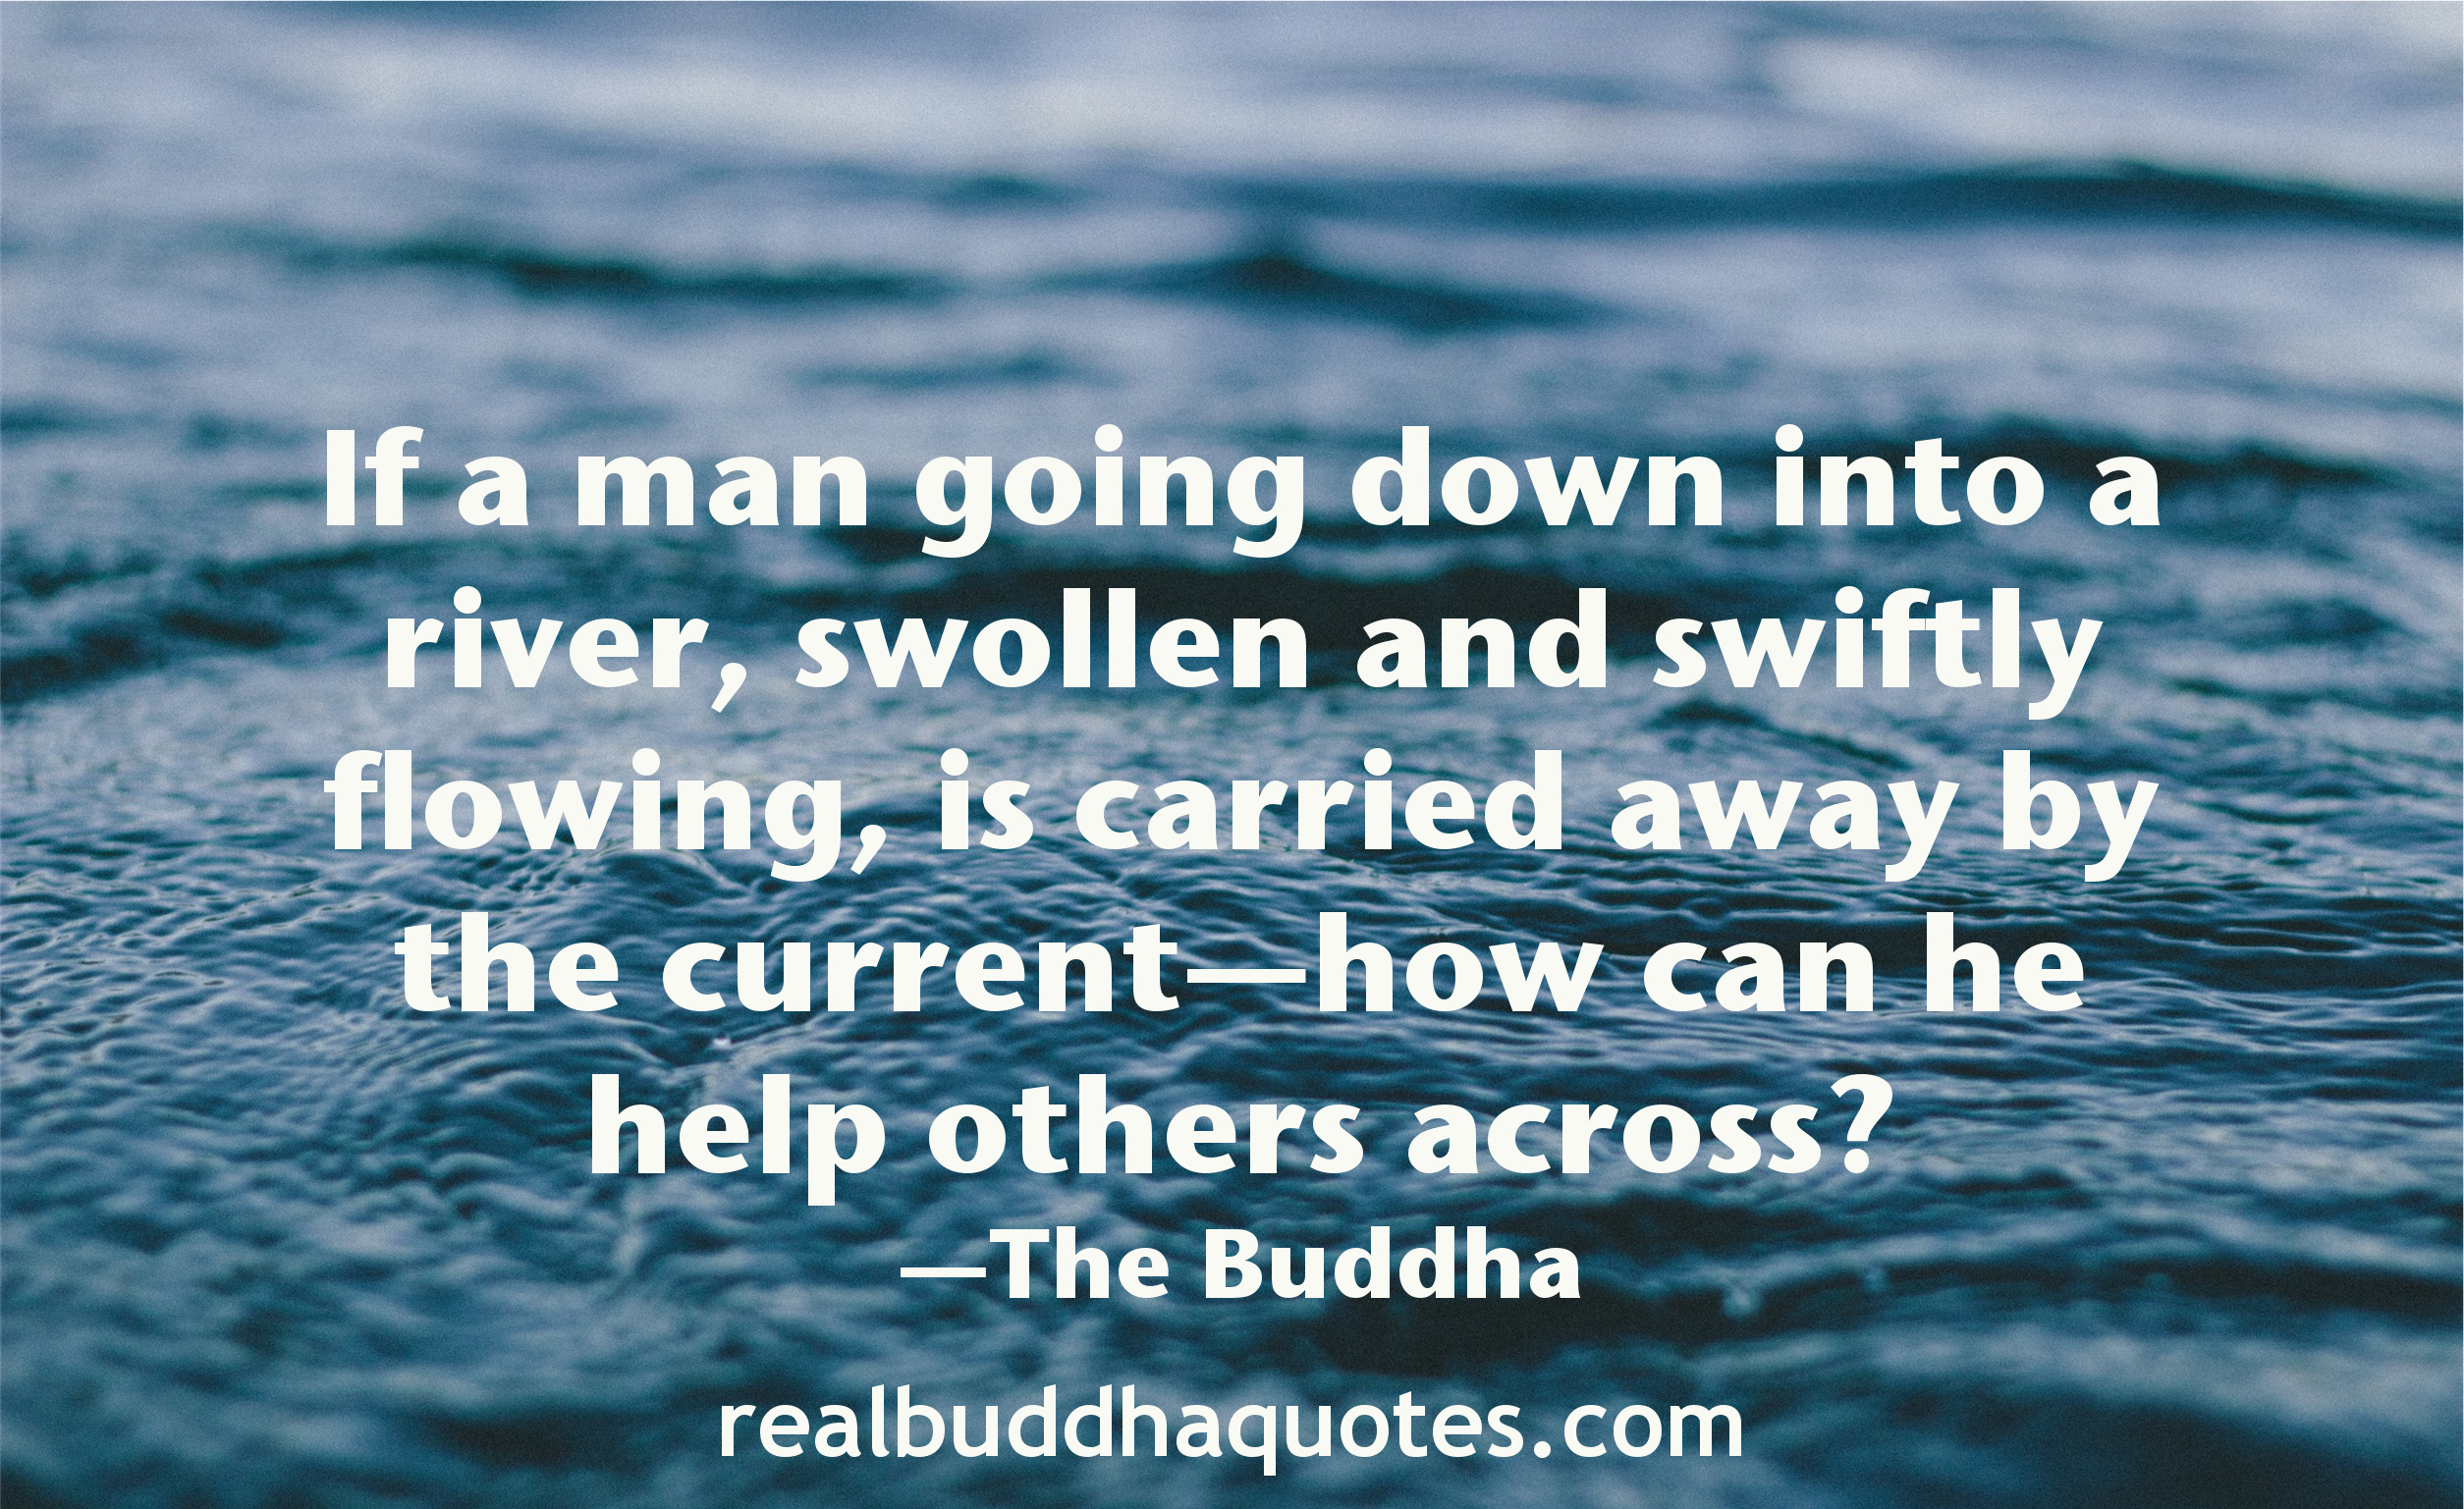 Quotes About Helping Compassion  Real Buddha Quotes